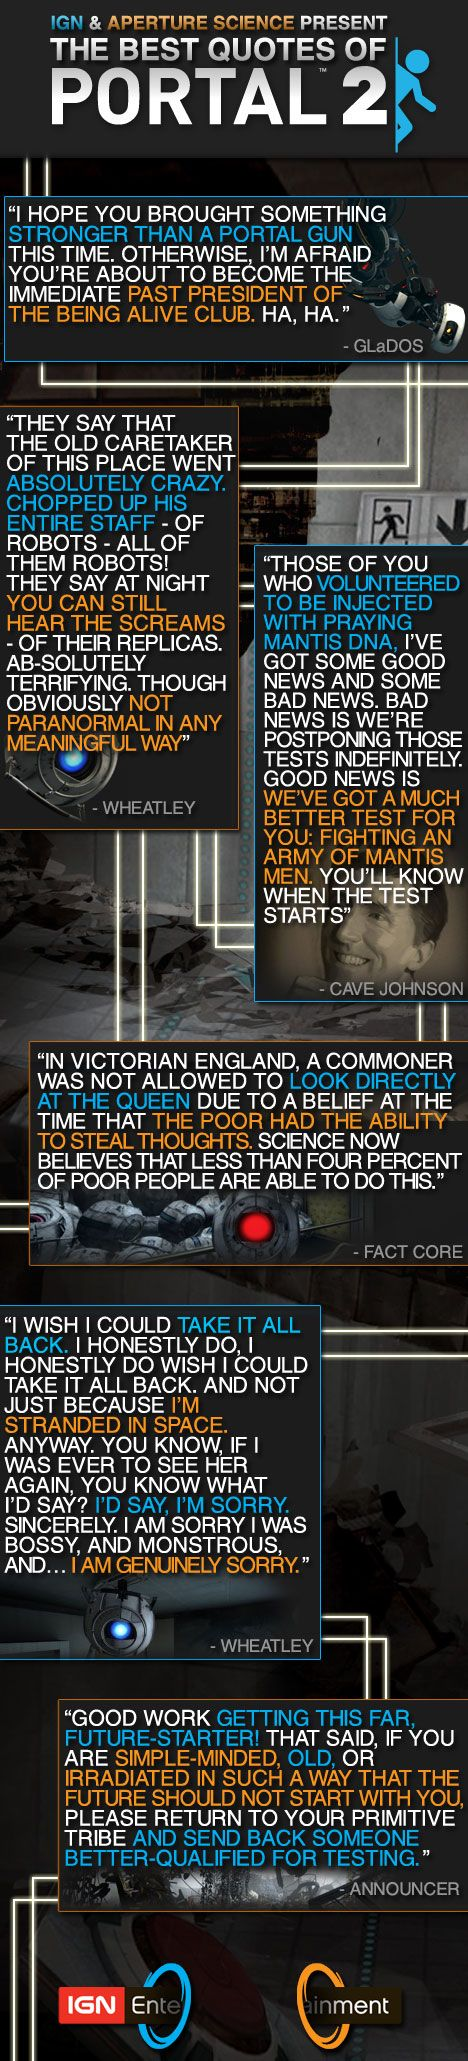 the best of portal 2 quotes